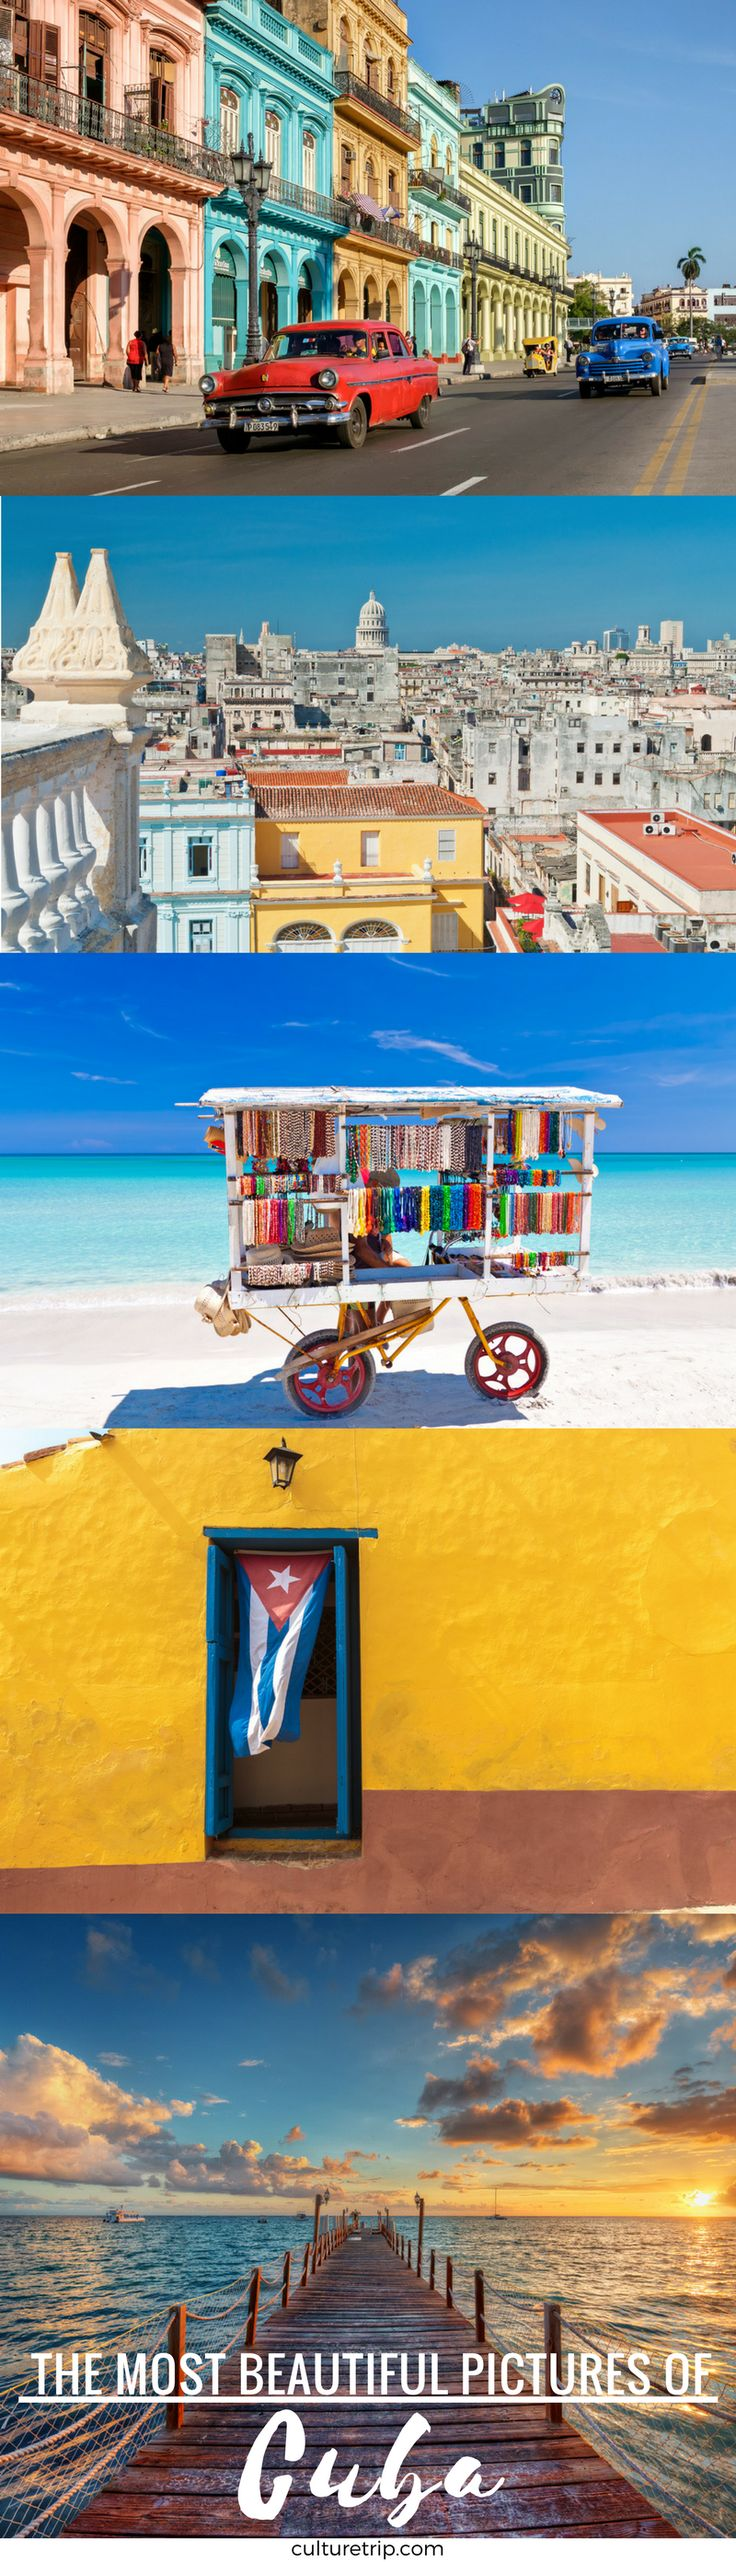 These AMAZING Photos Of Cuba Will Give You Severe Wanderlust